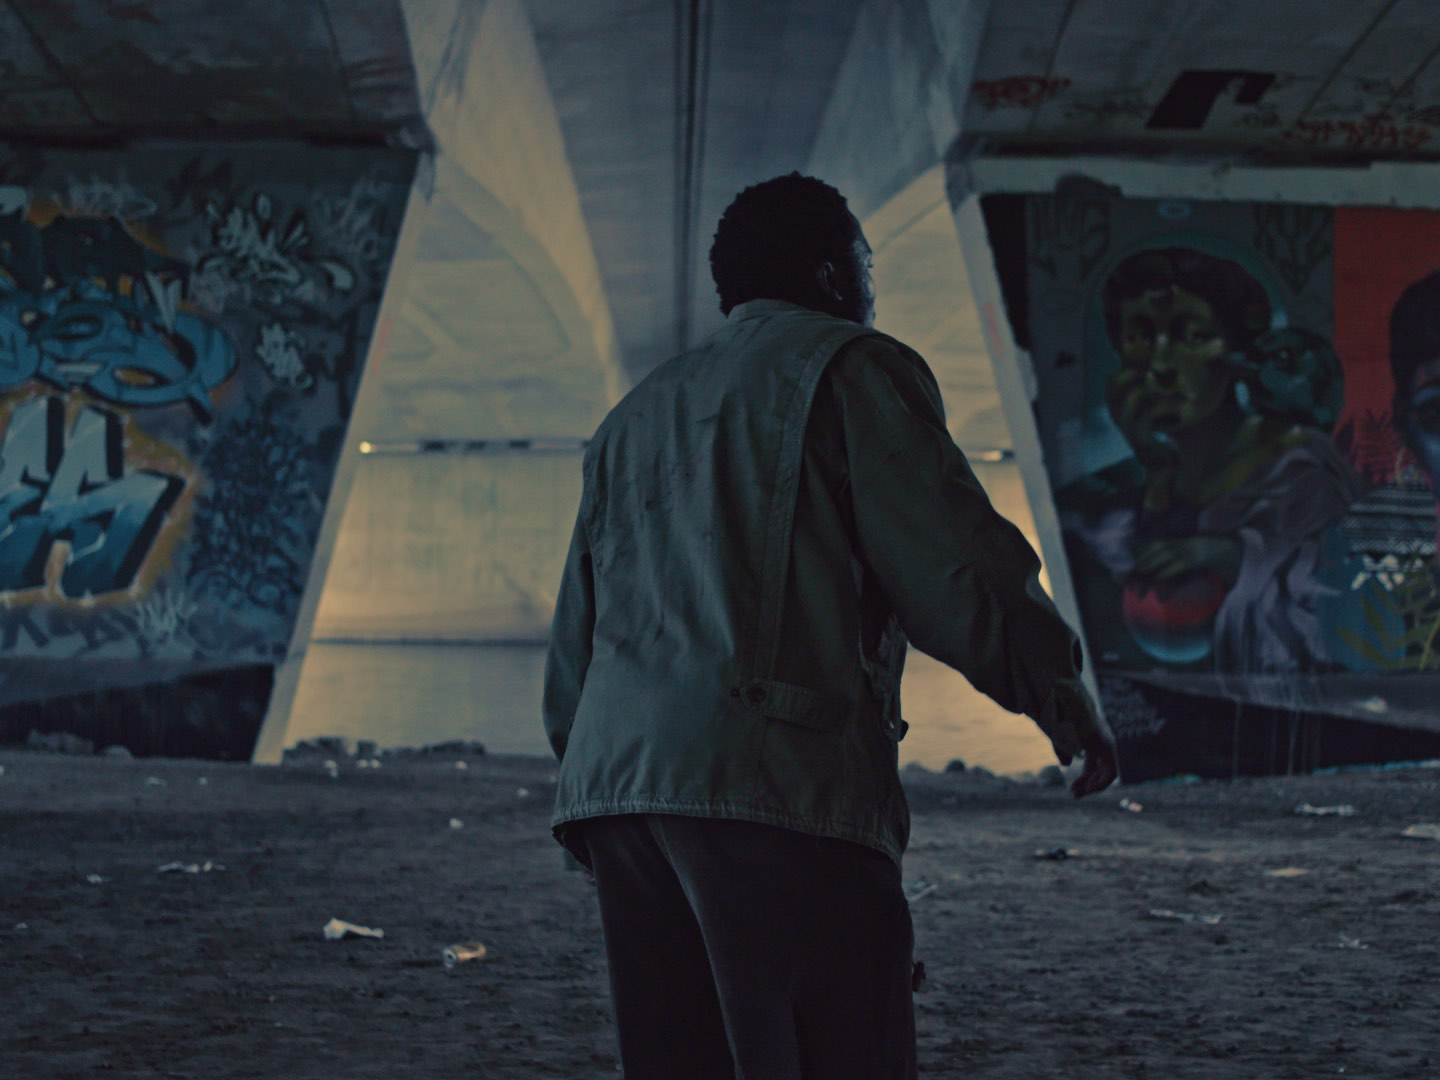 Still image from the short film Lenny. Cinematographer and Colorist Morgana McKenzie